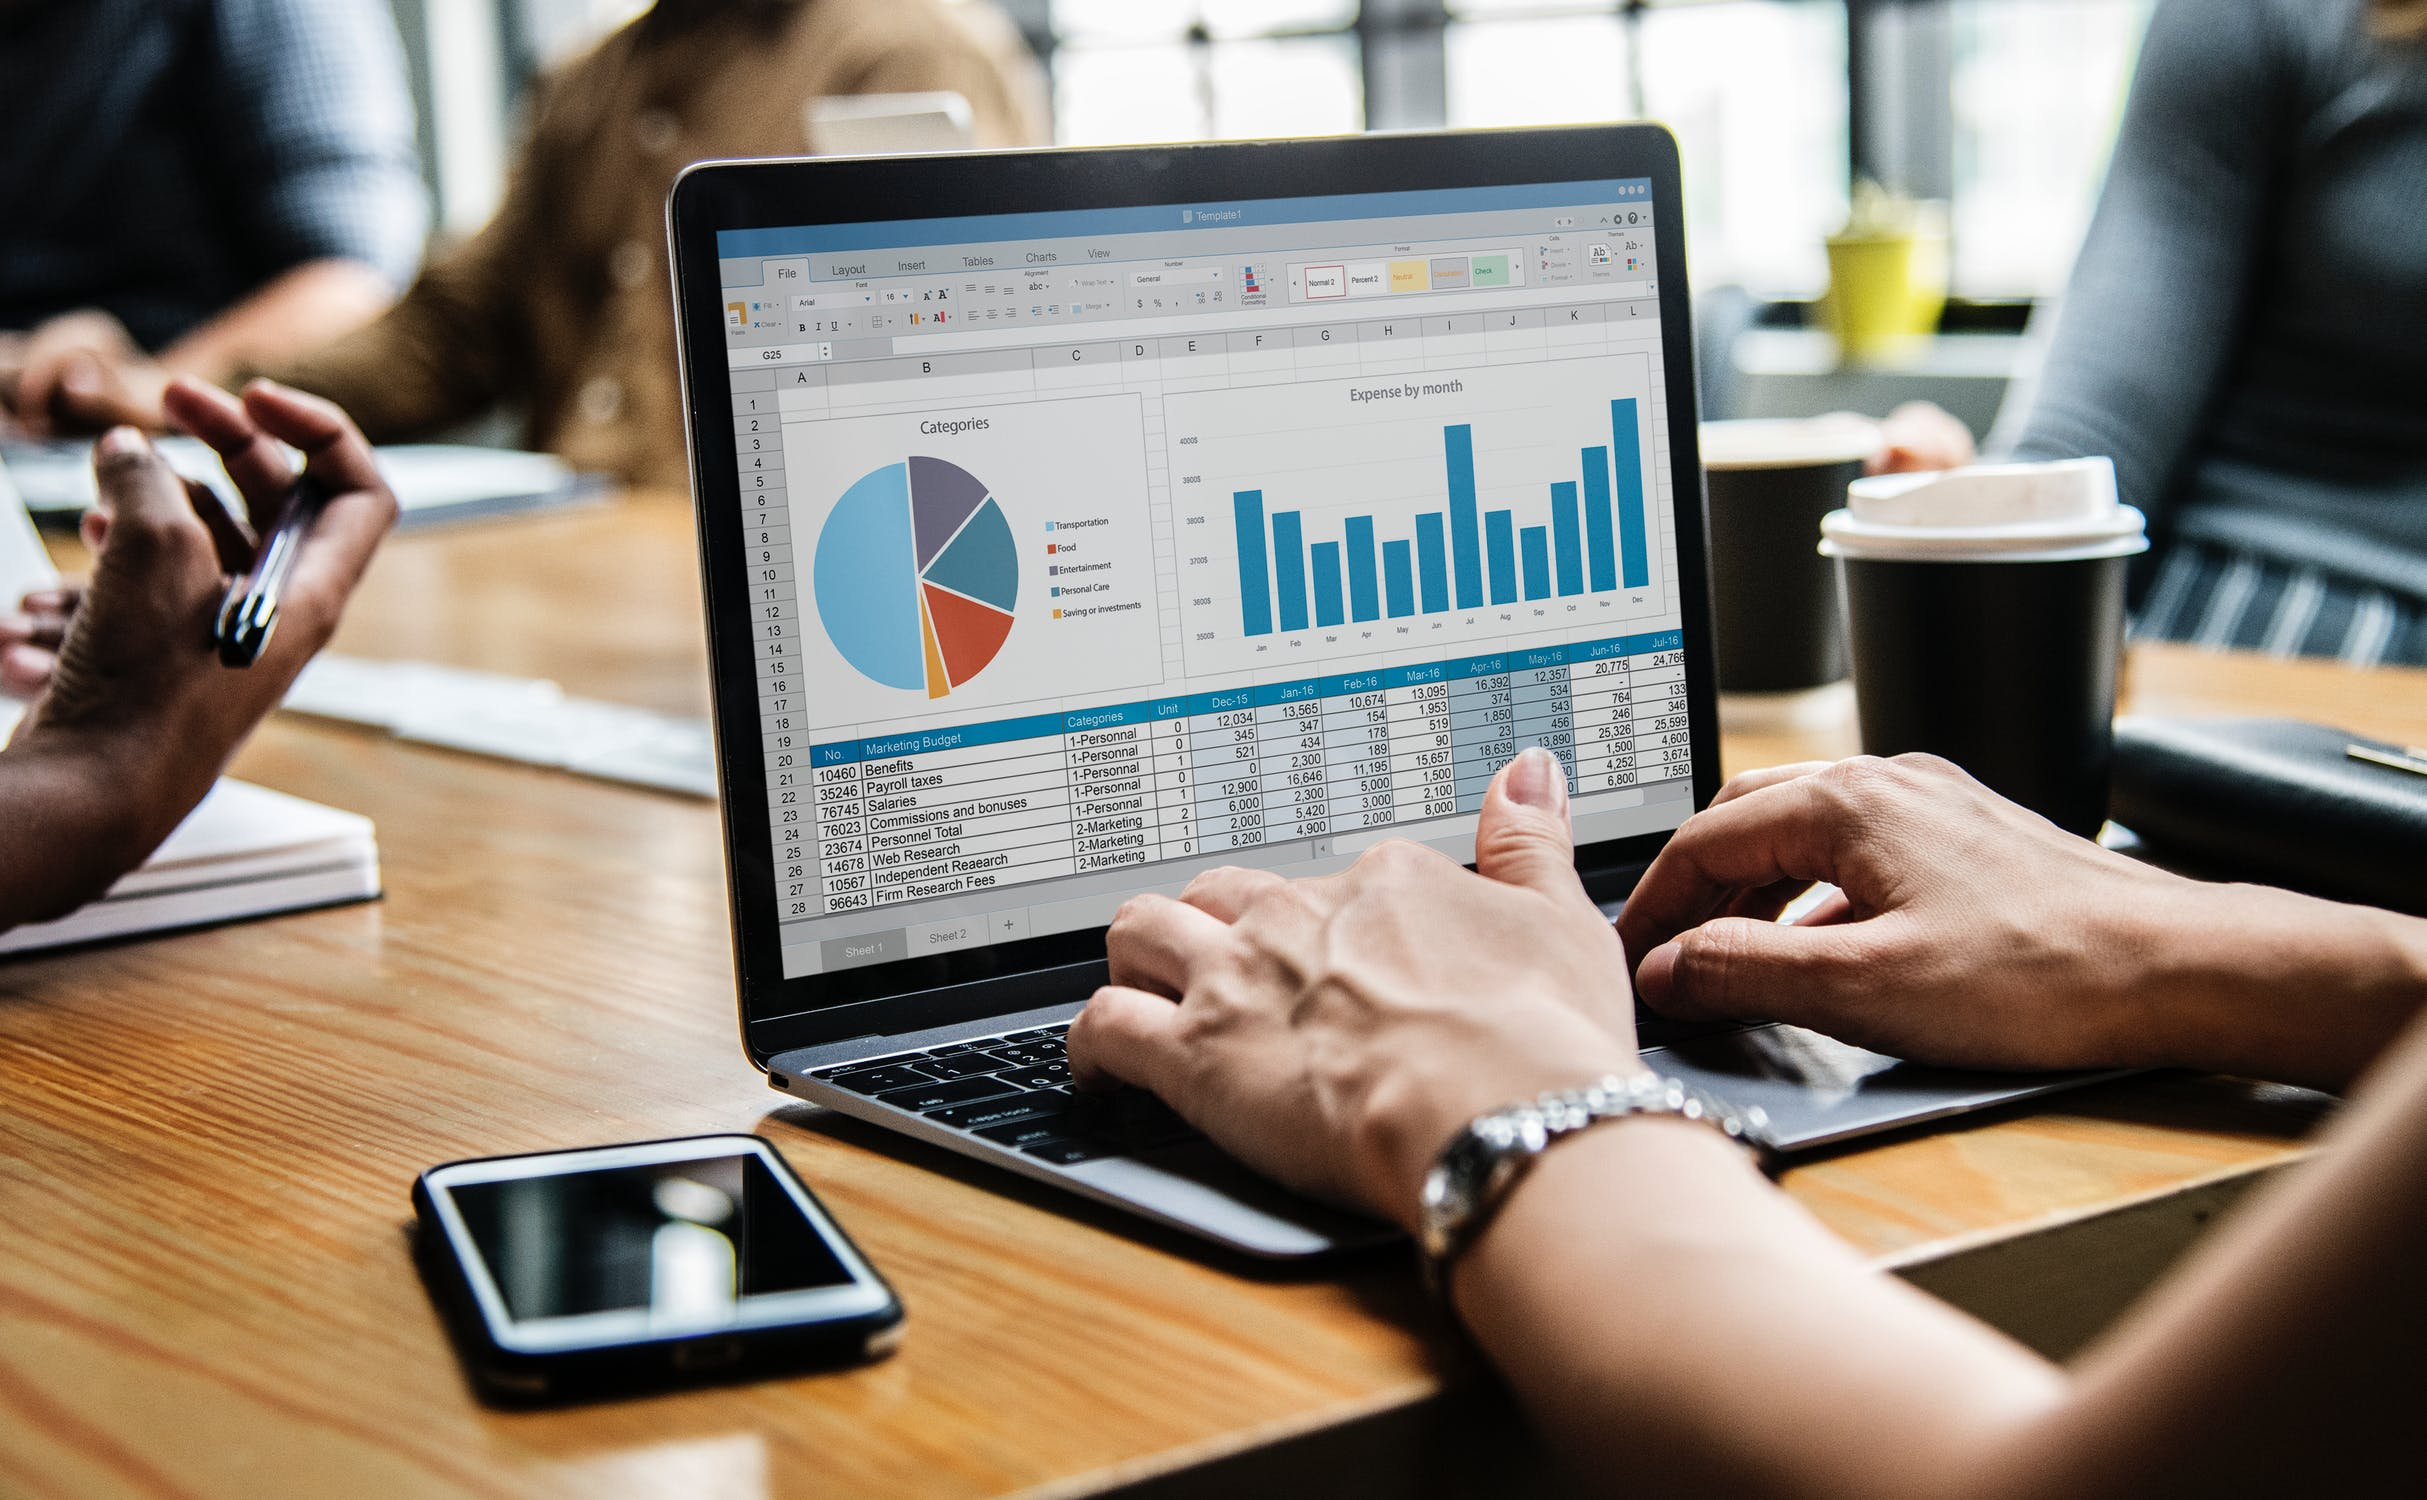 tracking & reporting - Get the results you're looking for with frequent reporting and testing to maximize your budget.